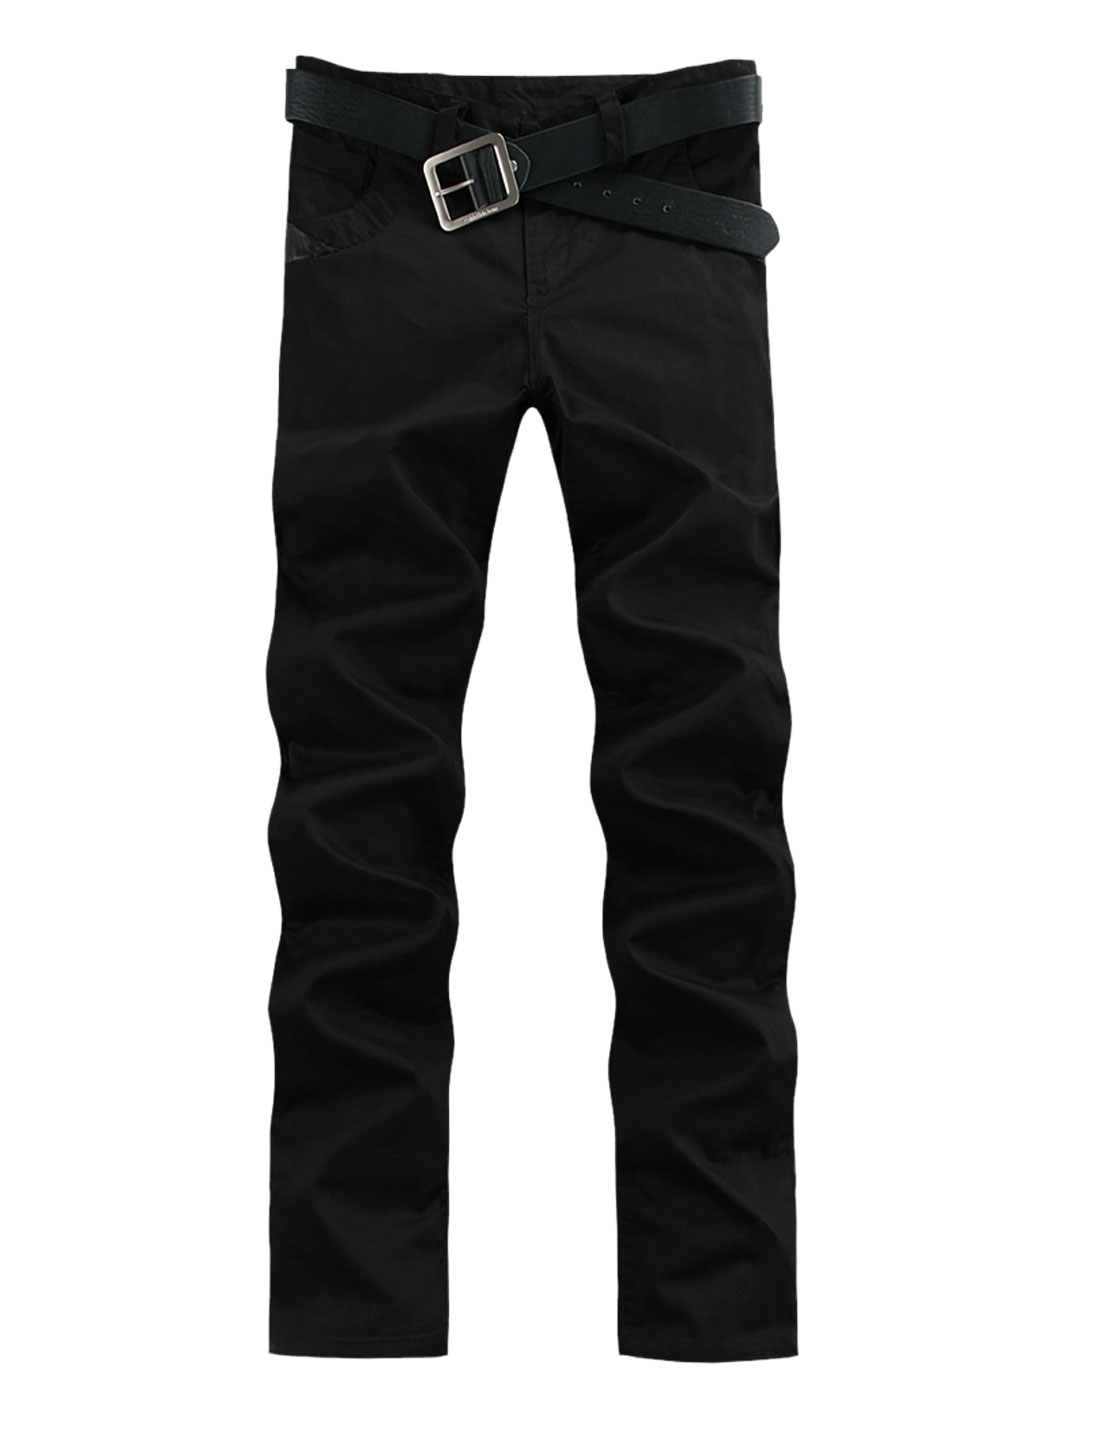 Men Belt Loop Zip Up Imitation Leather Leisure Pants Black W32